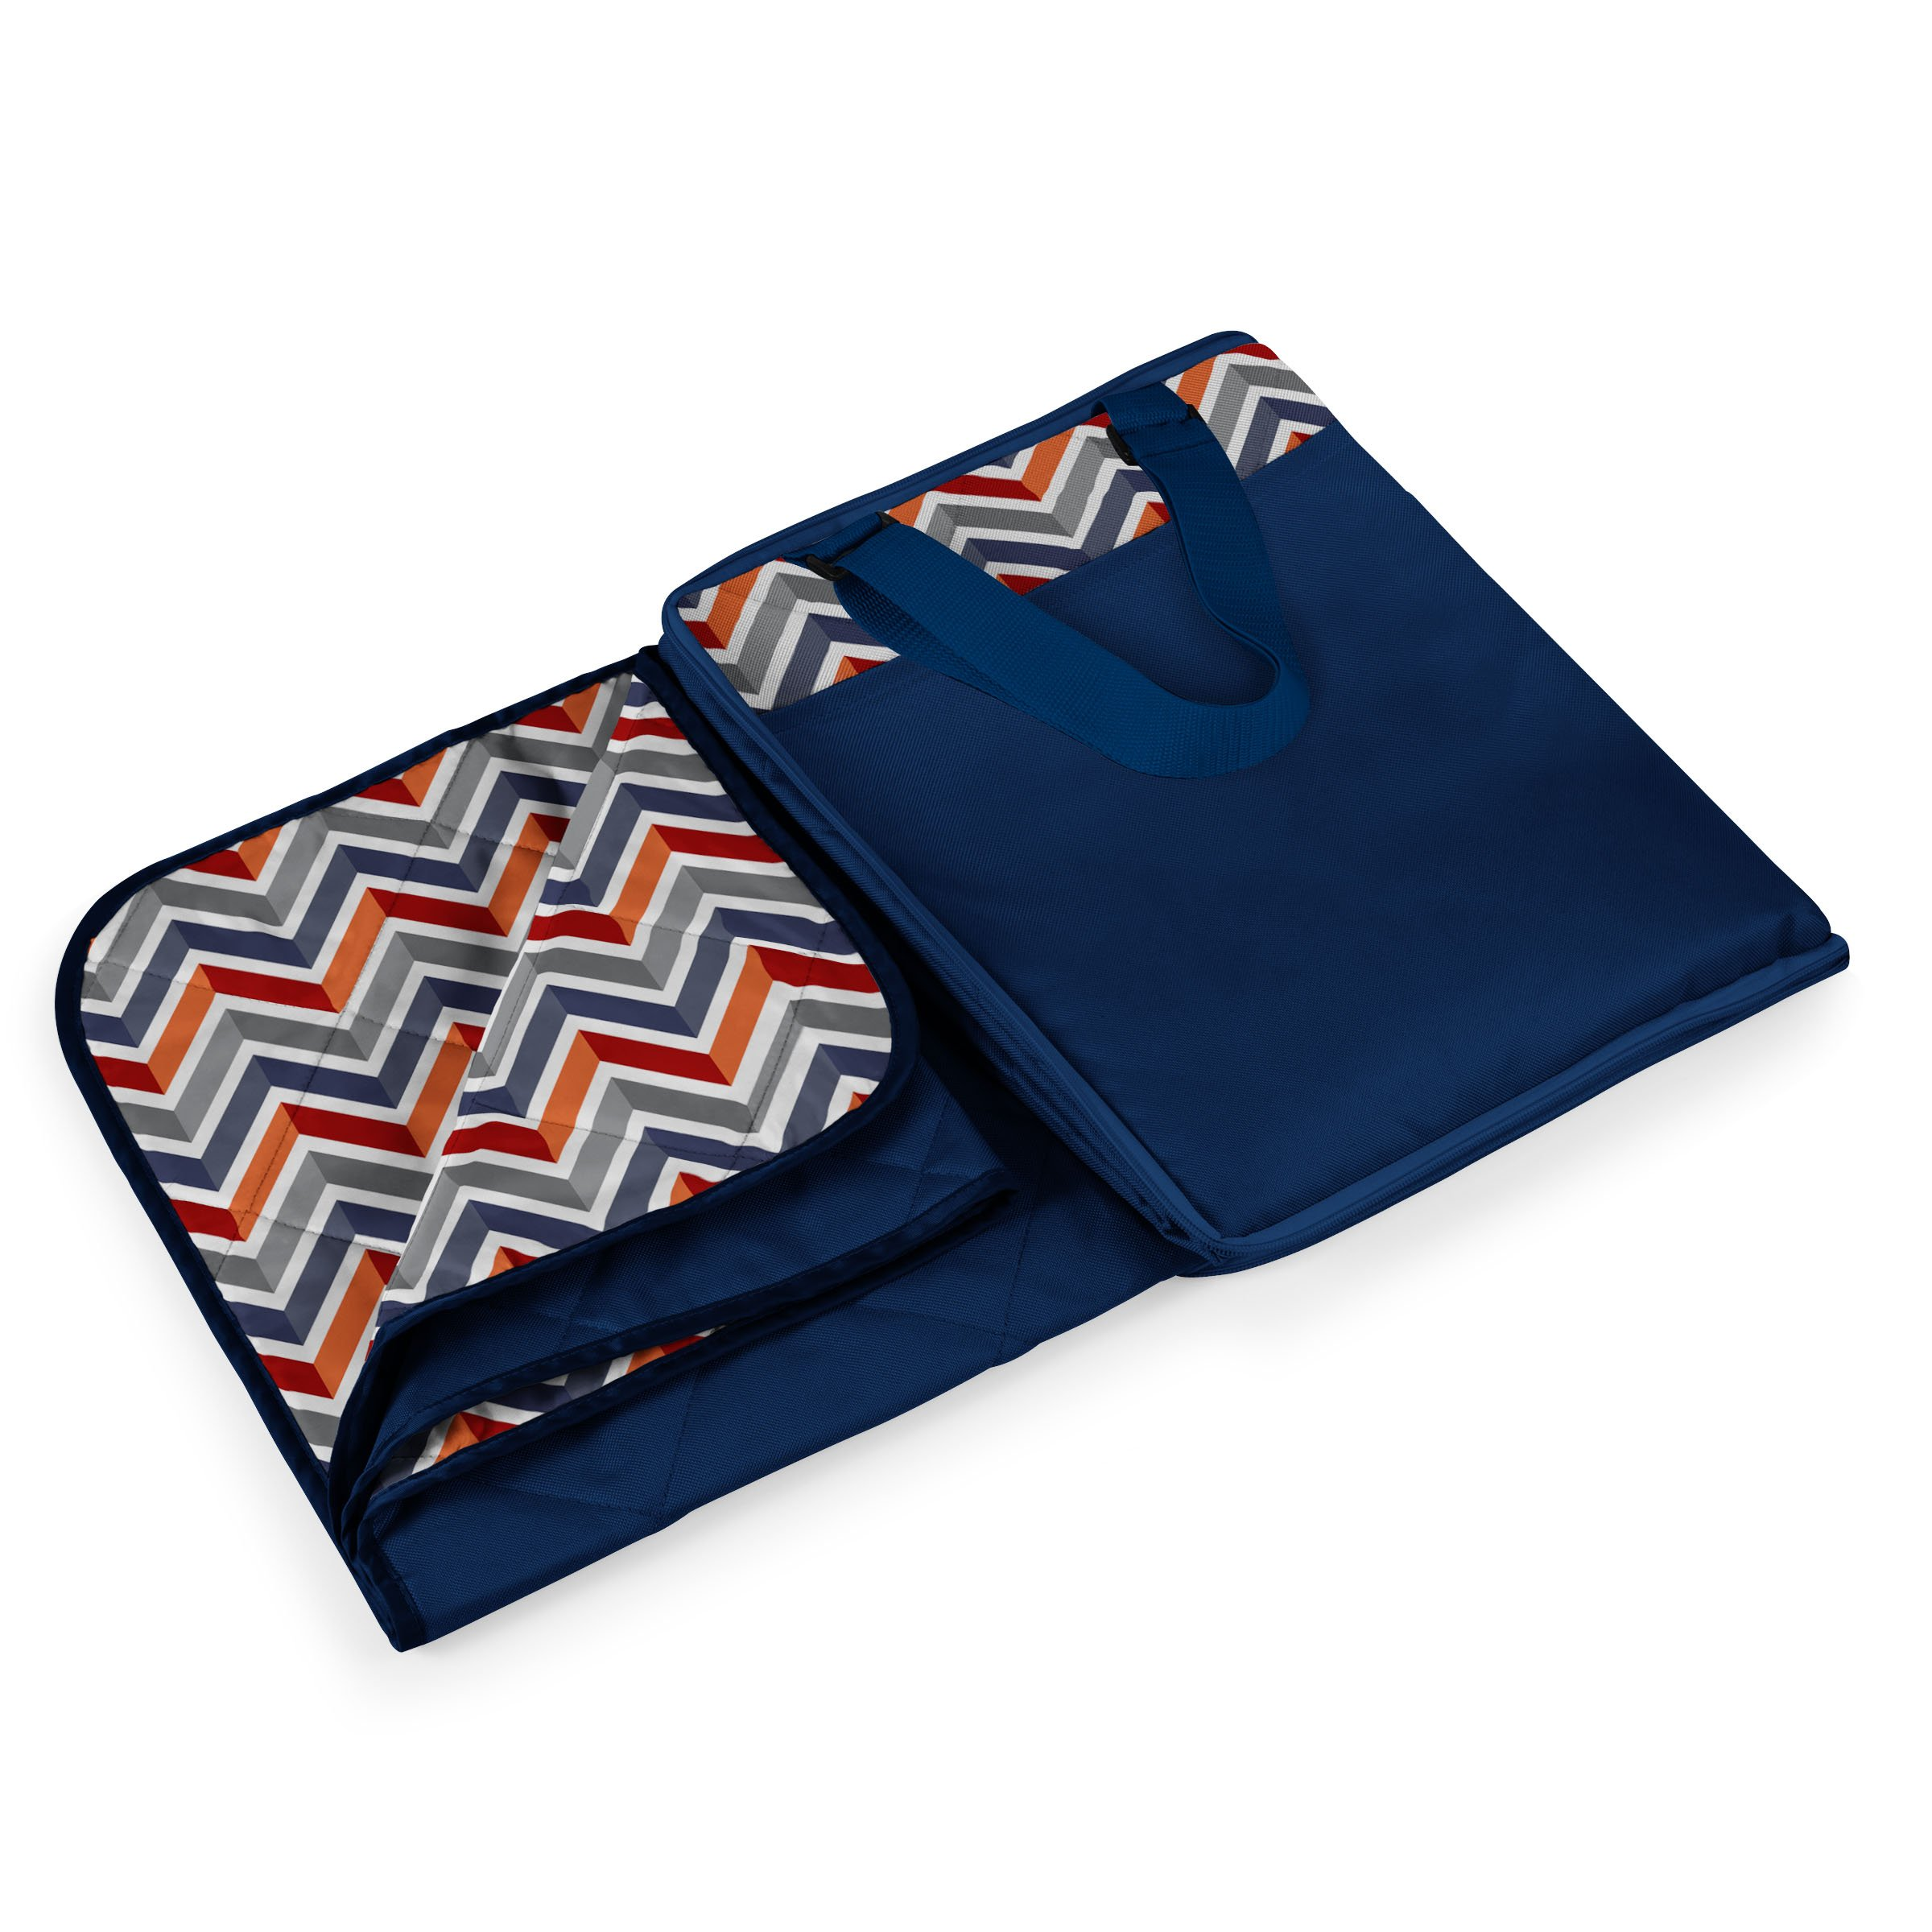 ONIVA - a Picnic Time Brand Vista Outdoor Picnic Blanket Tote XL, Navy with Vibe Print